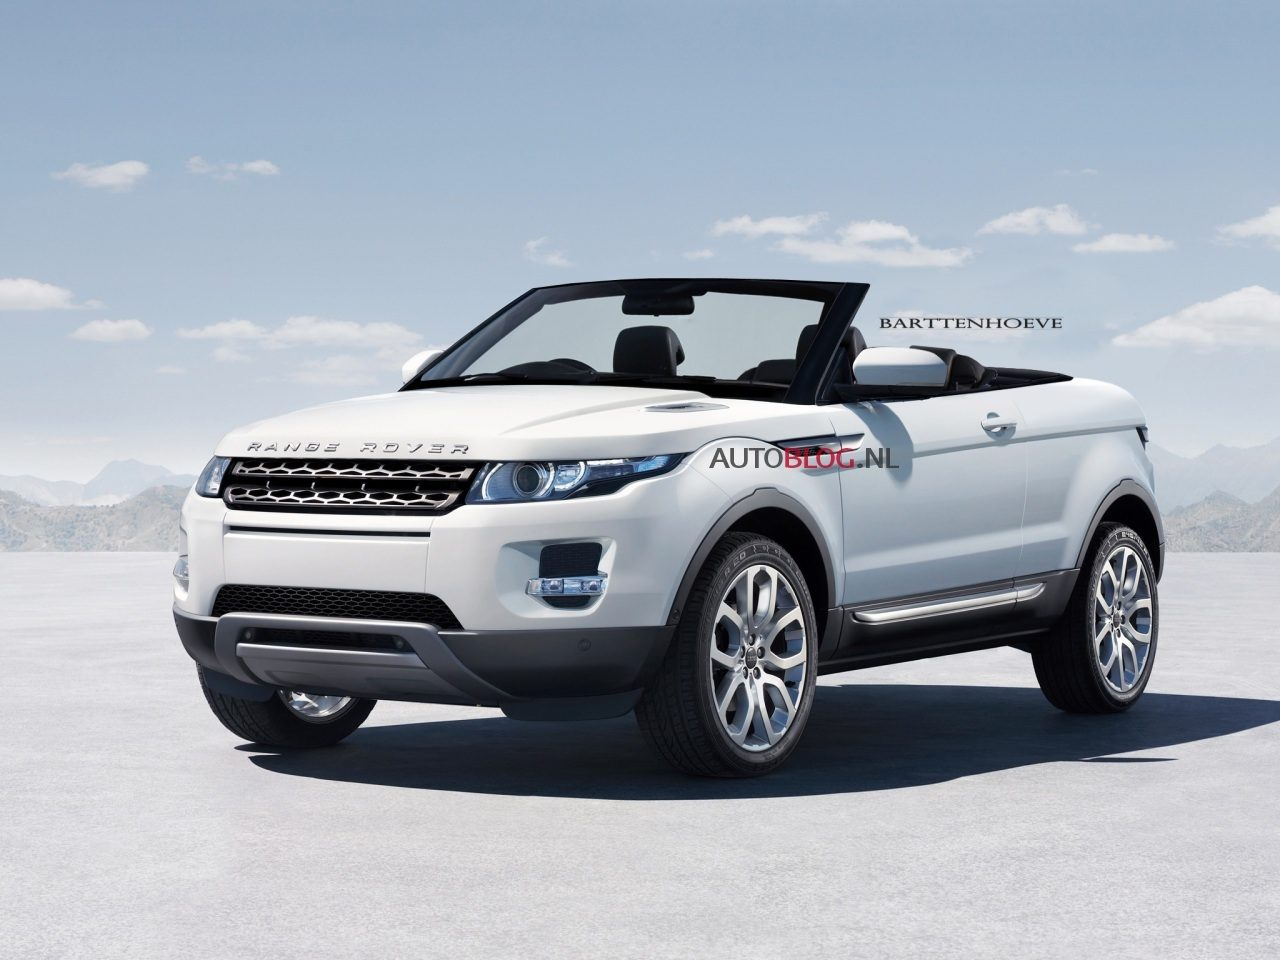 range rover evoque cabrio kwestie van tijd. Black Bedroom Furniture Sets. Home Design Ideas